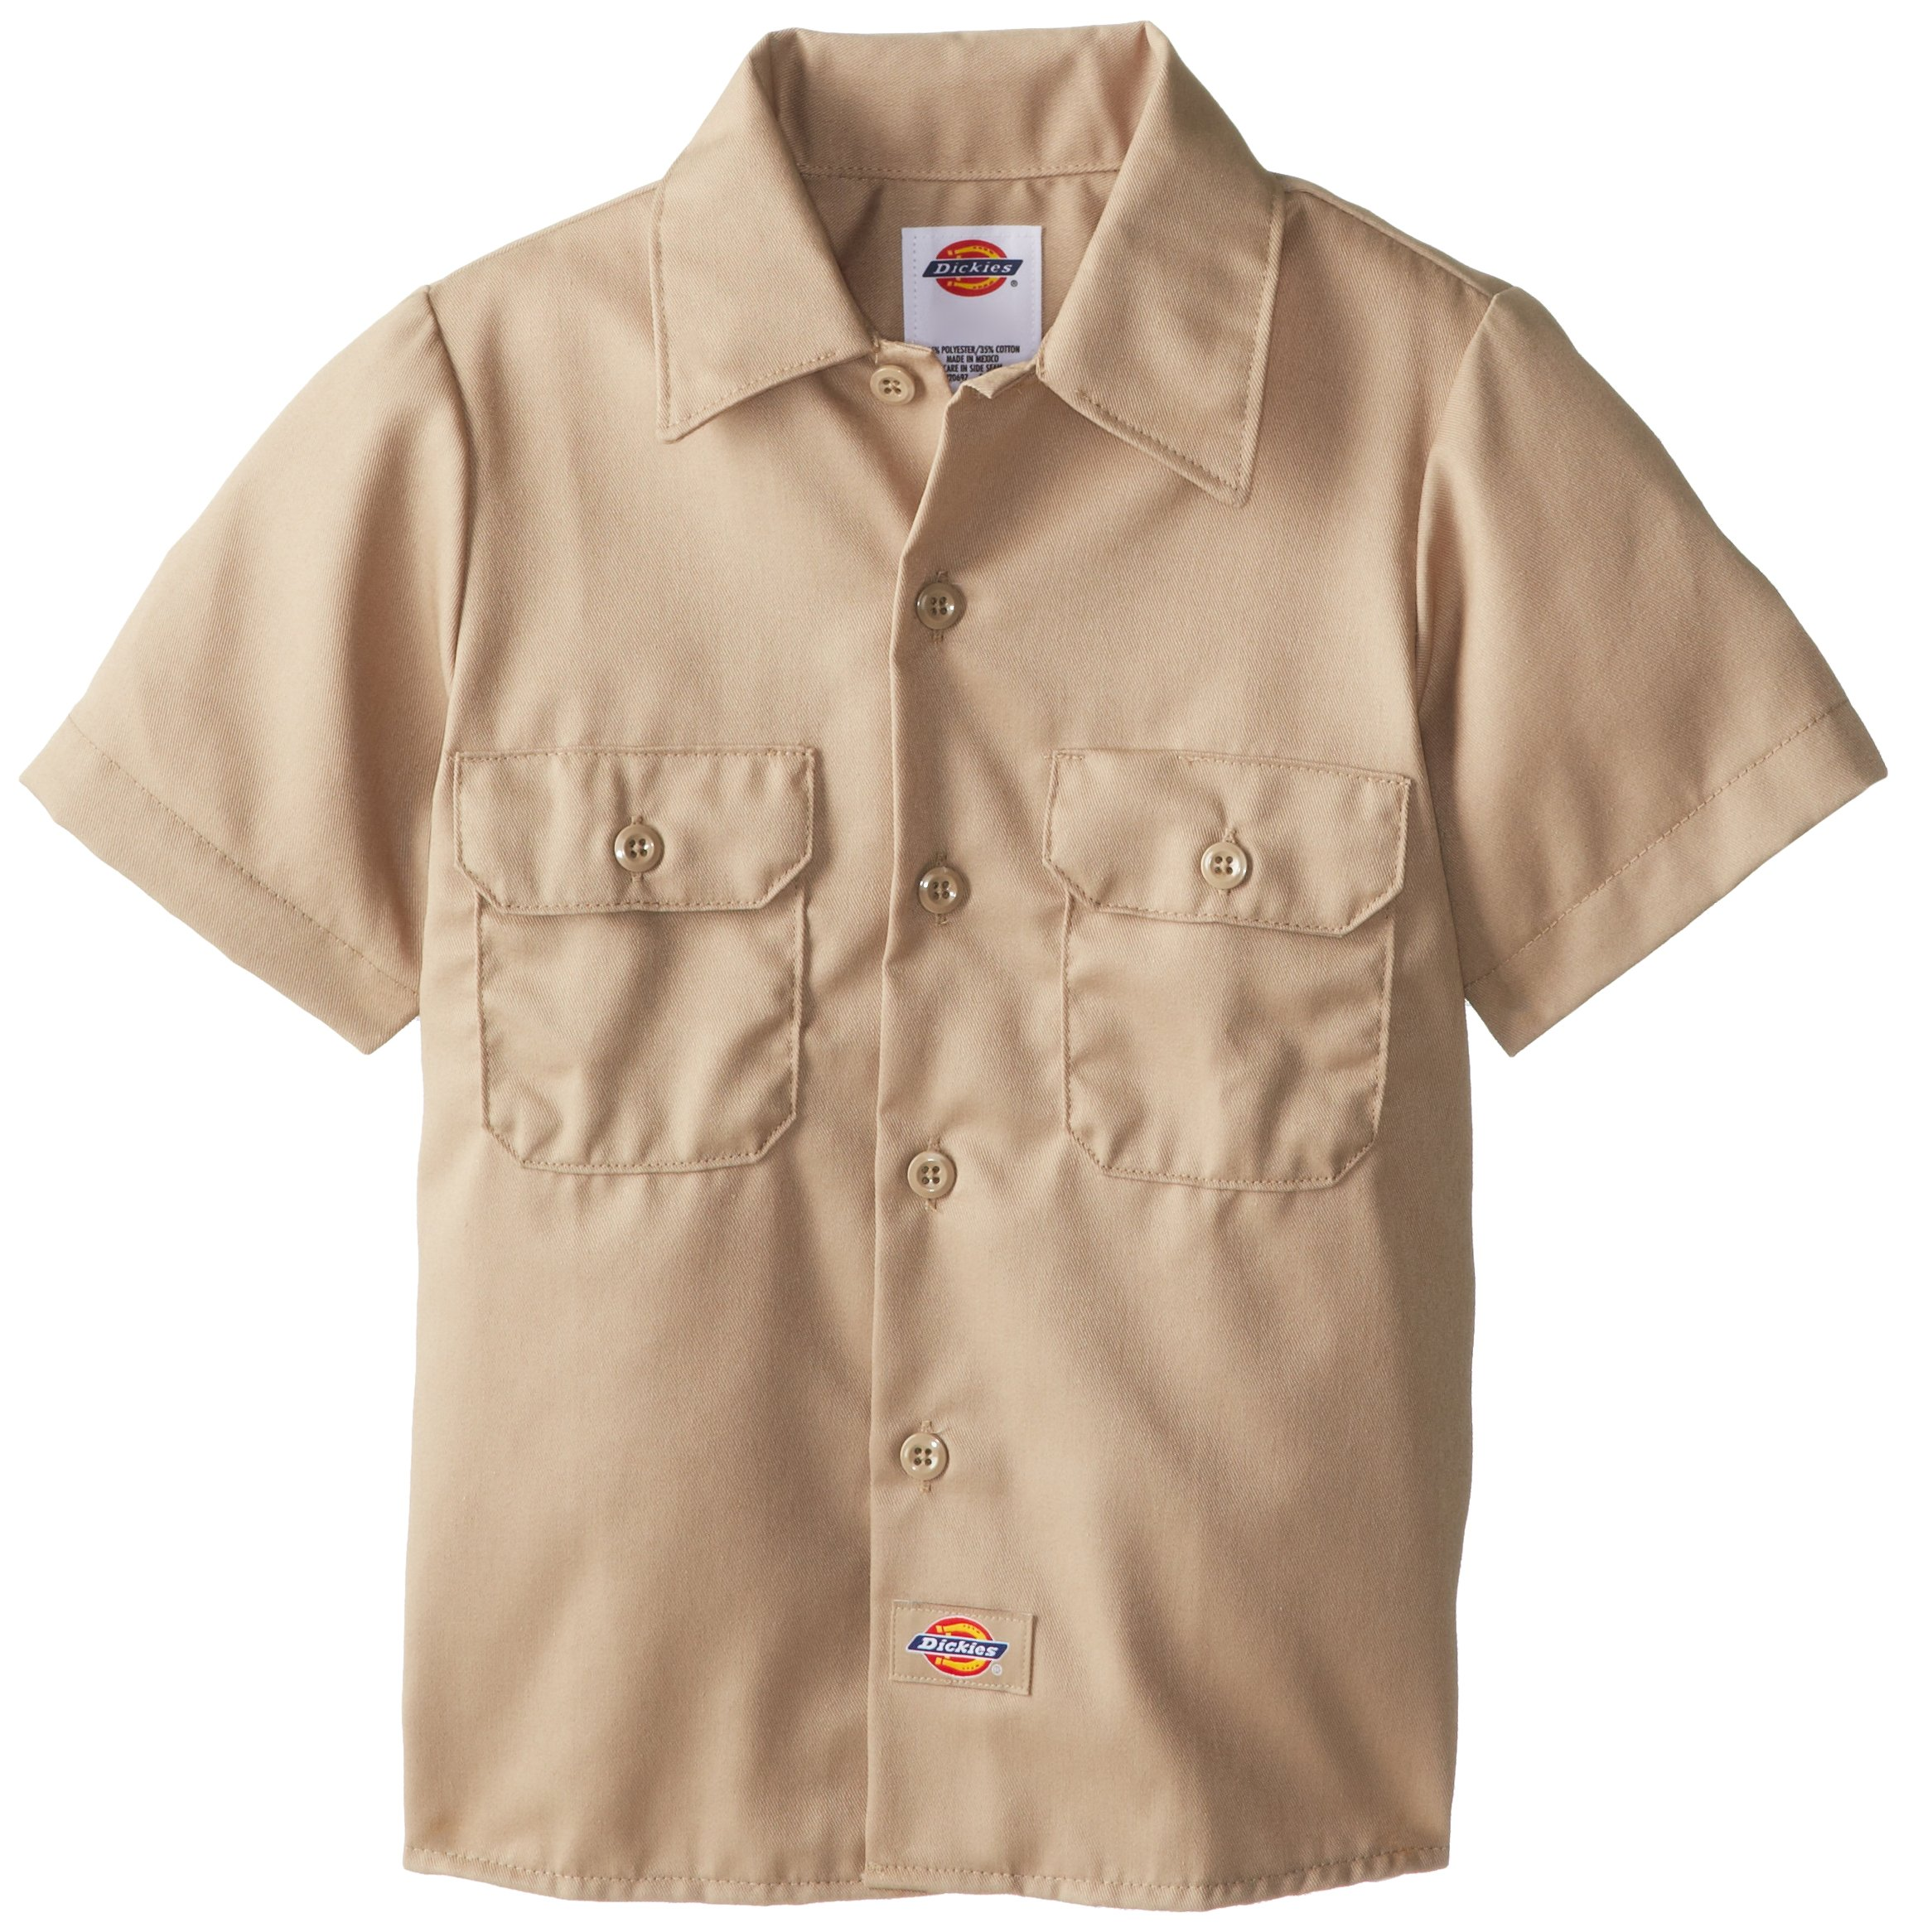 Dickies Boys' Twill Shirt, Desert Sand, Medium by dickies